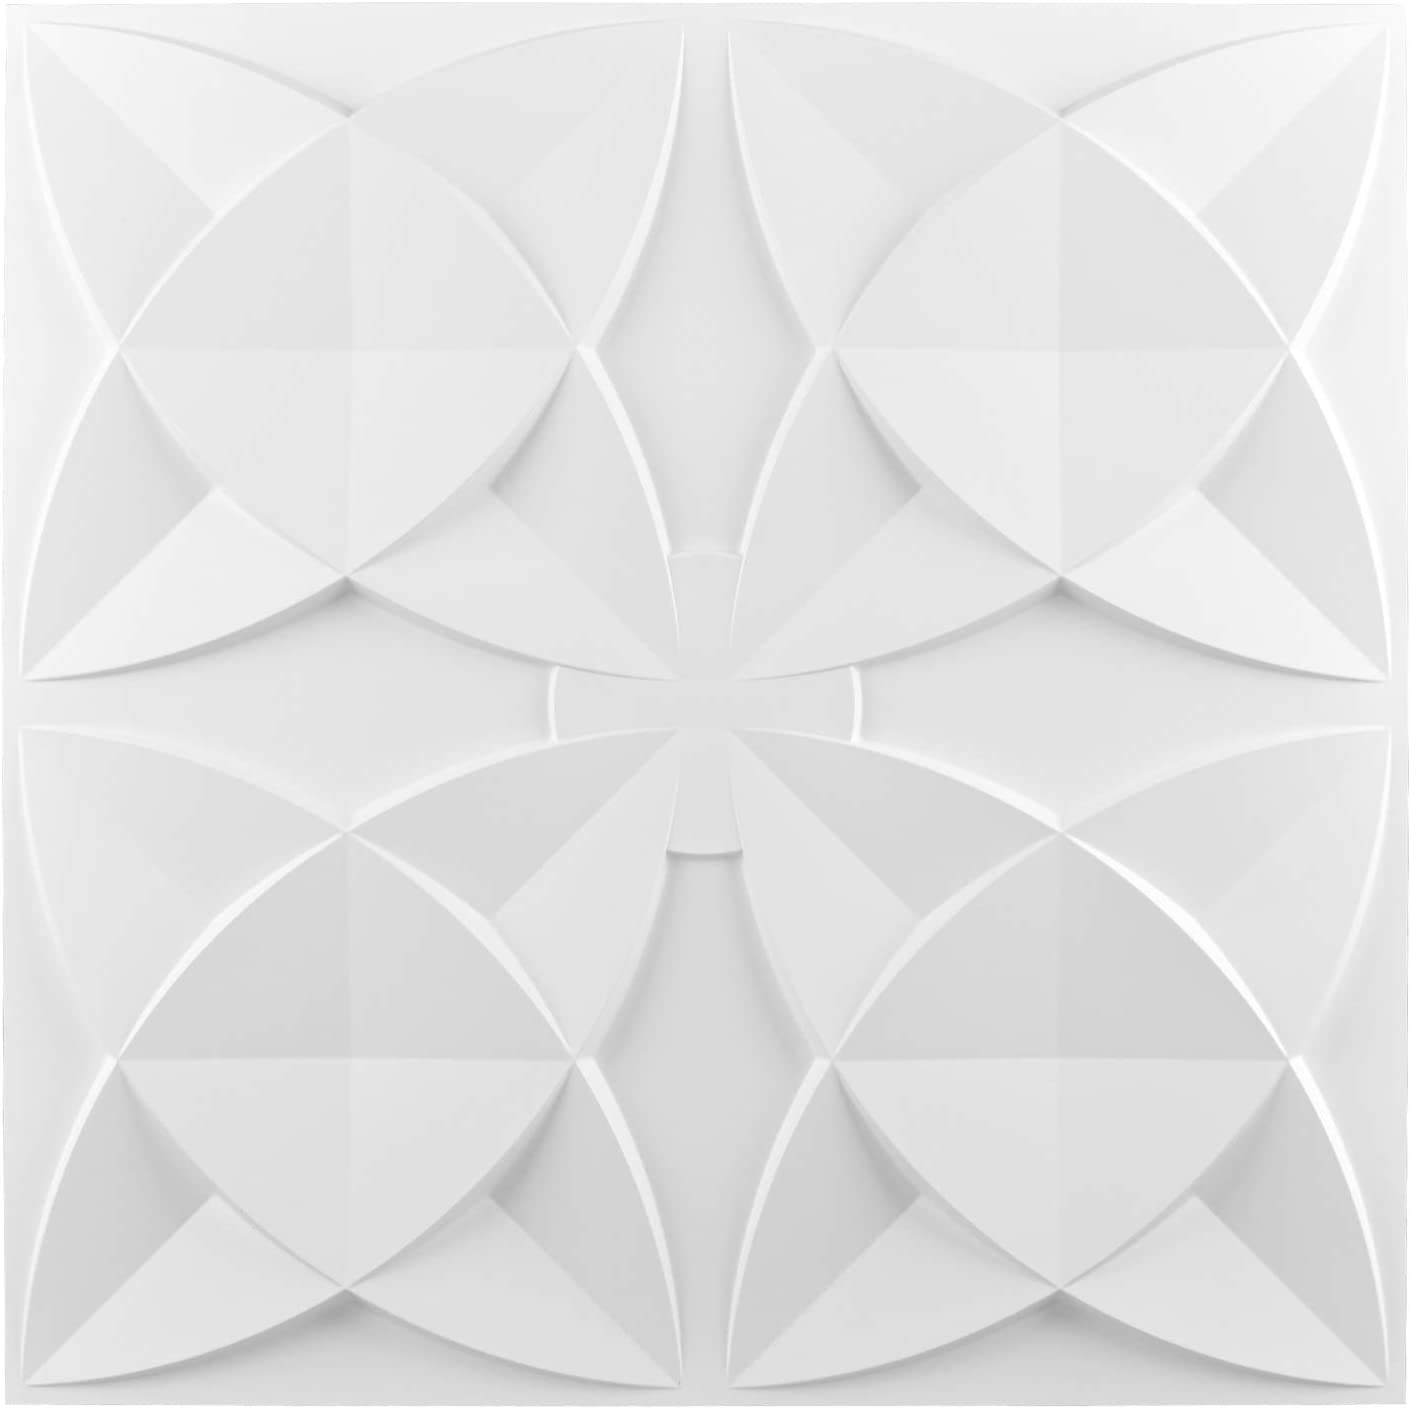 Art3d Decorative Drop Ceiling Tile 2x2 Pack of 48pcs, Glue up Ceiling Panel Square Relief in Matt White